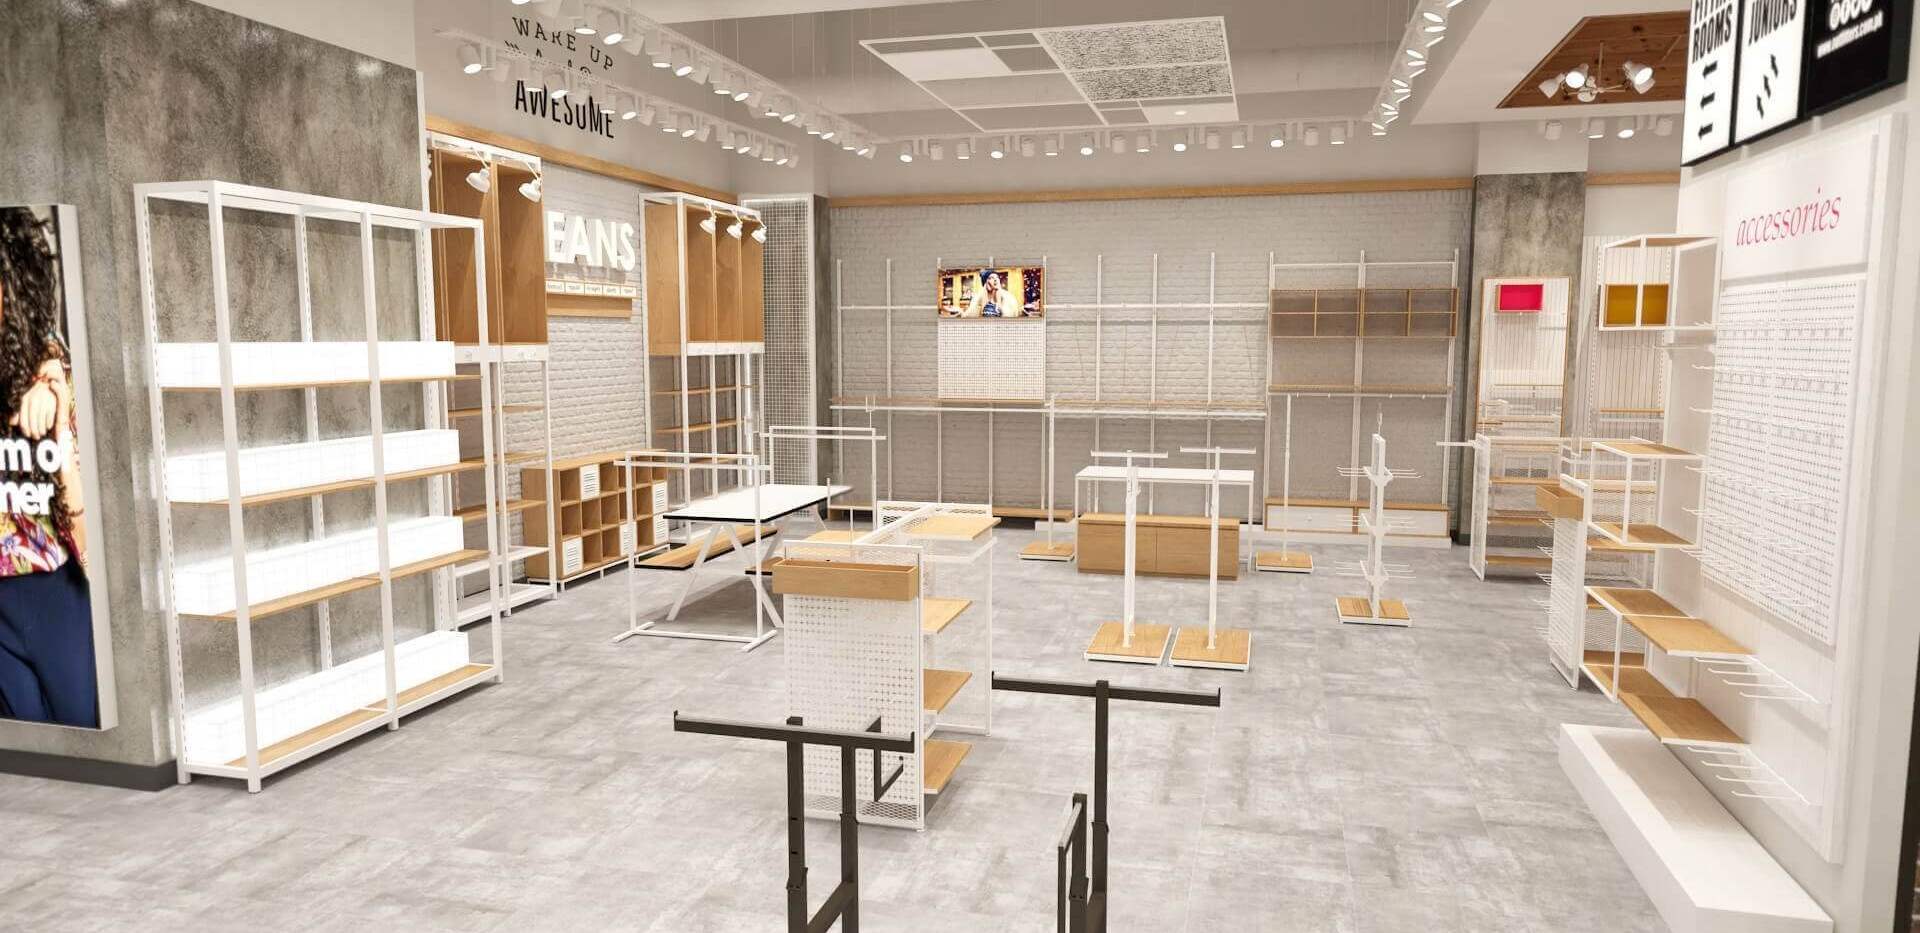 Outfitters - Fashion Store Shop Design-1